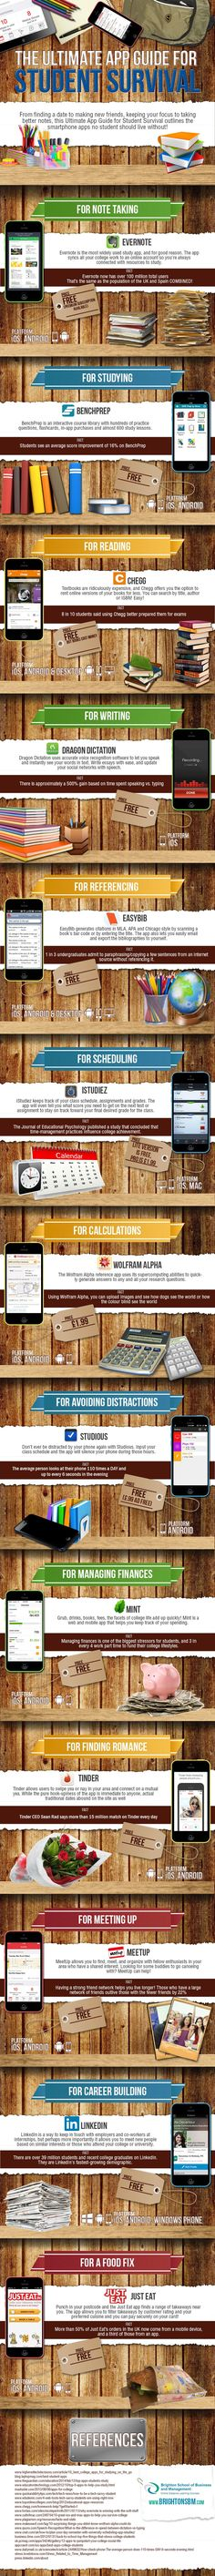 Infographic: App Guide For Student Survival Infographic-App-Guide-for-Student-SurvivalCollege Tips best college tips College Success, College Hacks, Education College, College Life, College Board, Kids Education, College Survival Guide, Survival Apps, Survival School